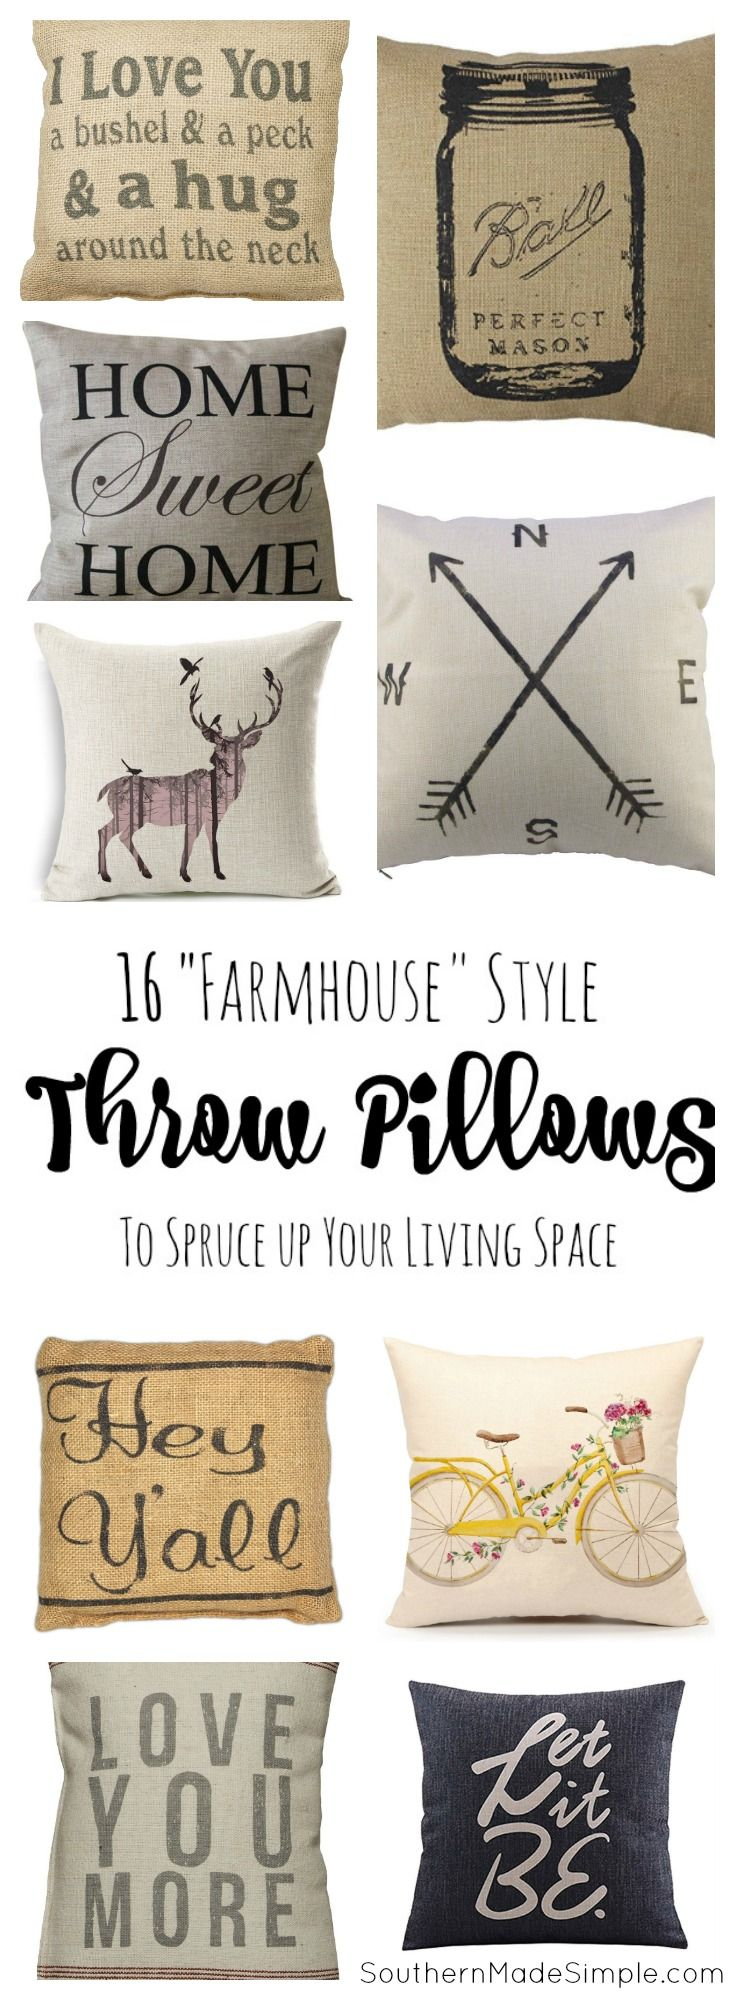 16 Farmhouse Pillows to Spruce up Your Decor